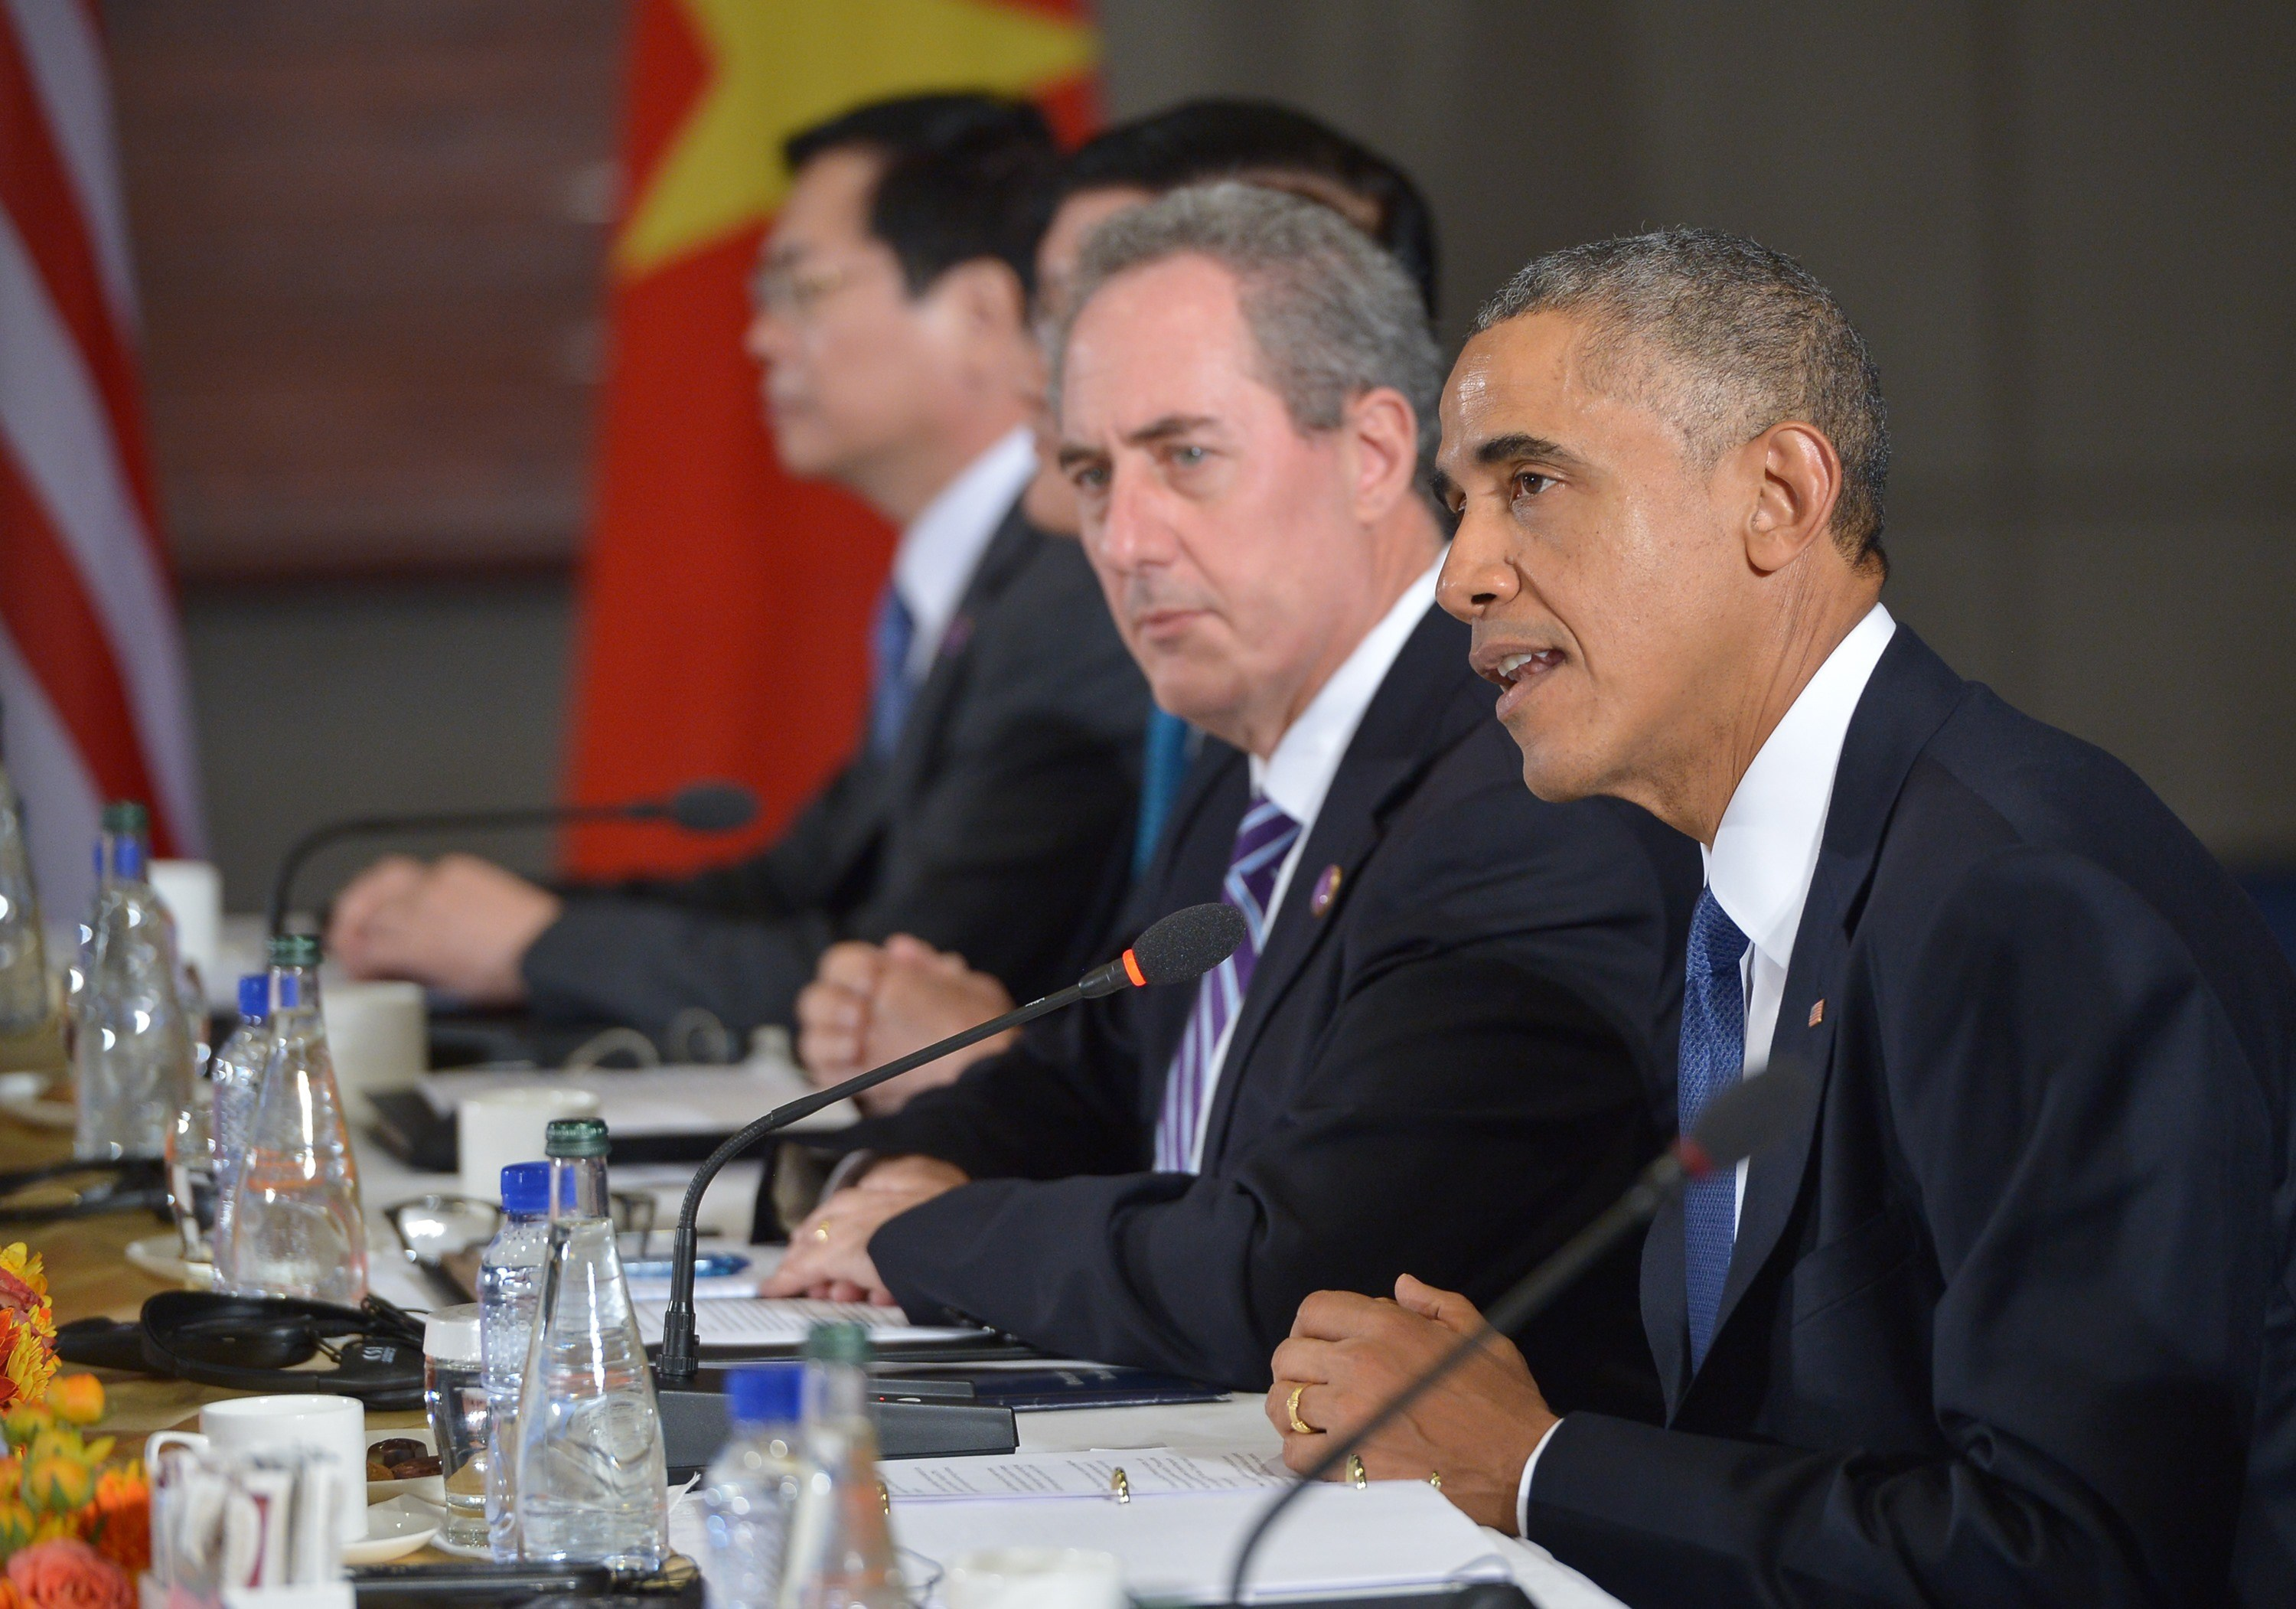 U.S. President Barack Obama speaks during a meeting with leaders from the Trans-Pacific Partnership at the US Embassy in Beijing on November 10, 2014 in Beijing. The TPP was agreed upon with 11 other Pacific Rim nations.